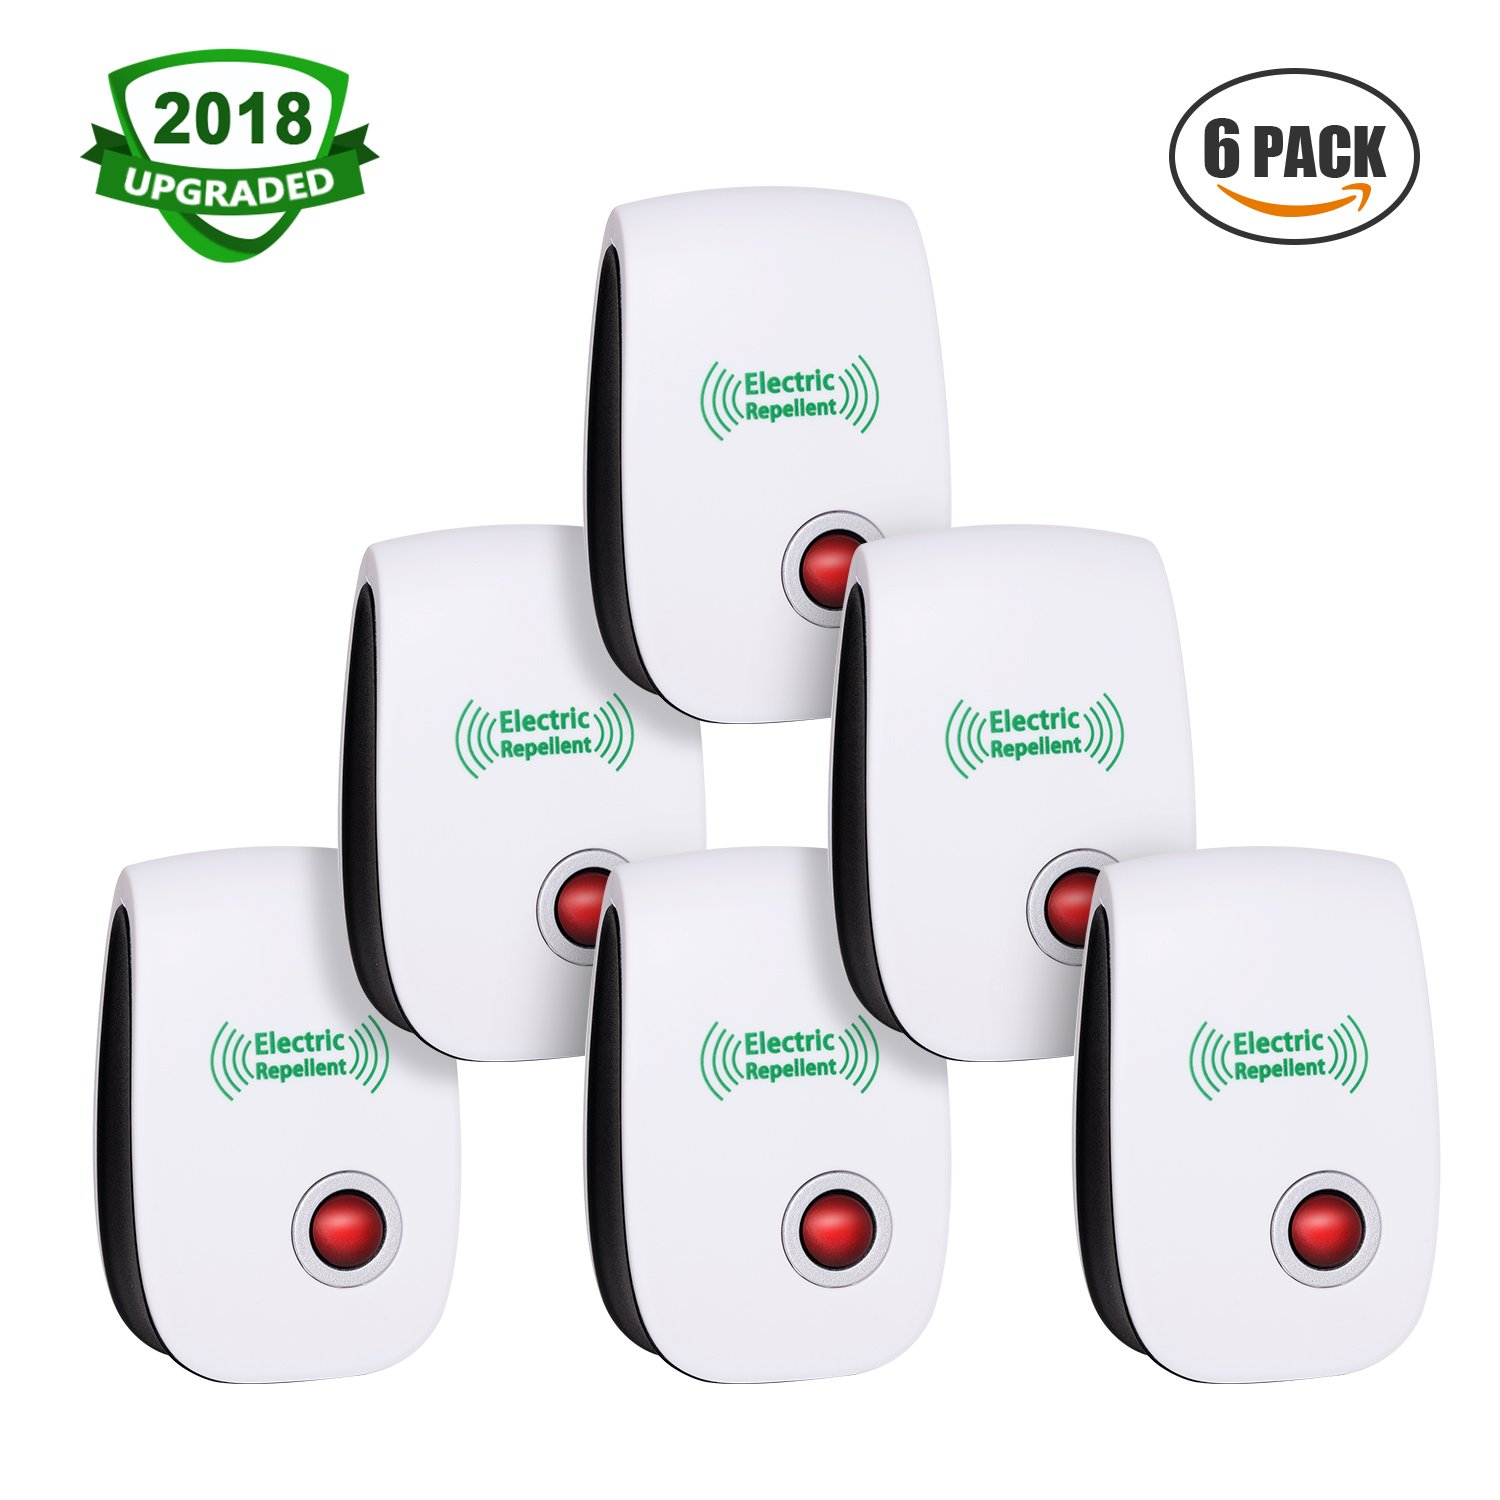 [2018 Upgraded] Ultrasonic Pest Repeller, Electrical Bug Repellent, Non-toxic Pest Repellent Plug in Indoor and Outdoor Pest Control for Mosquito Spider Ant Mice Roach and other Insect (6 packs)